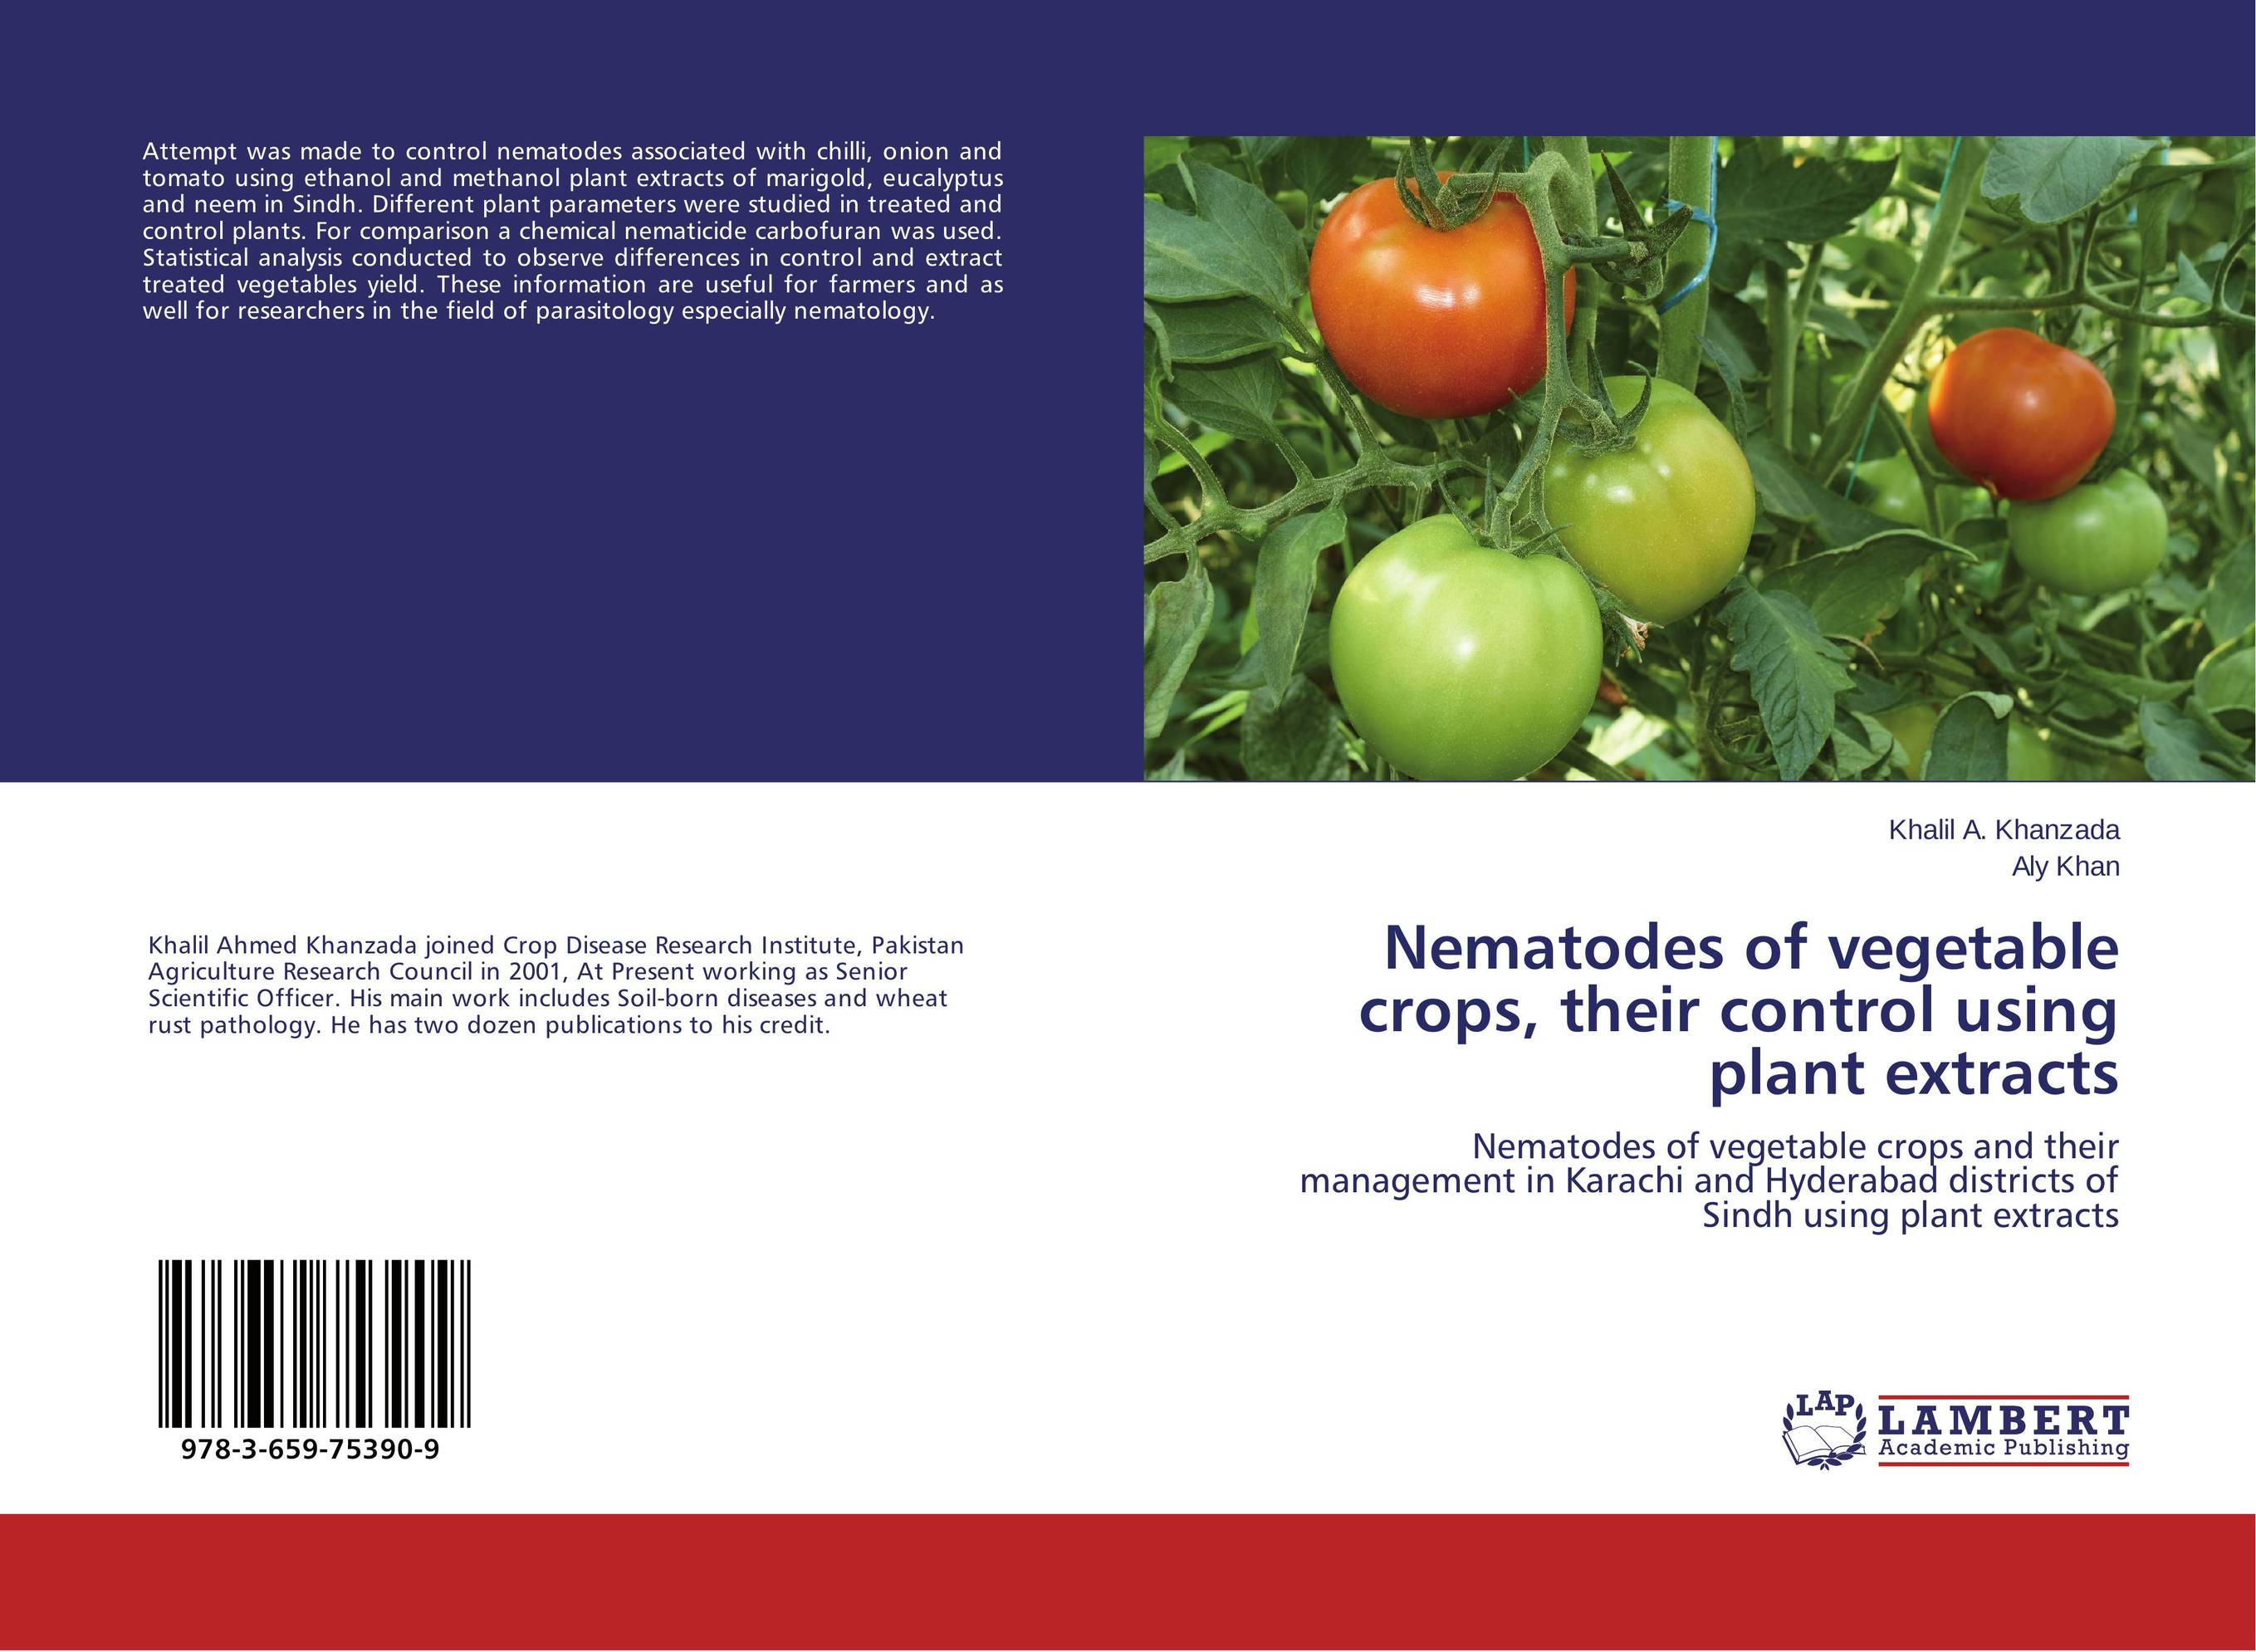 Nematodes of vegetable crops, their control using plant extracts nematodes of vegetable crops their control using plant extracts